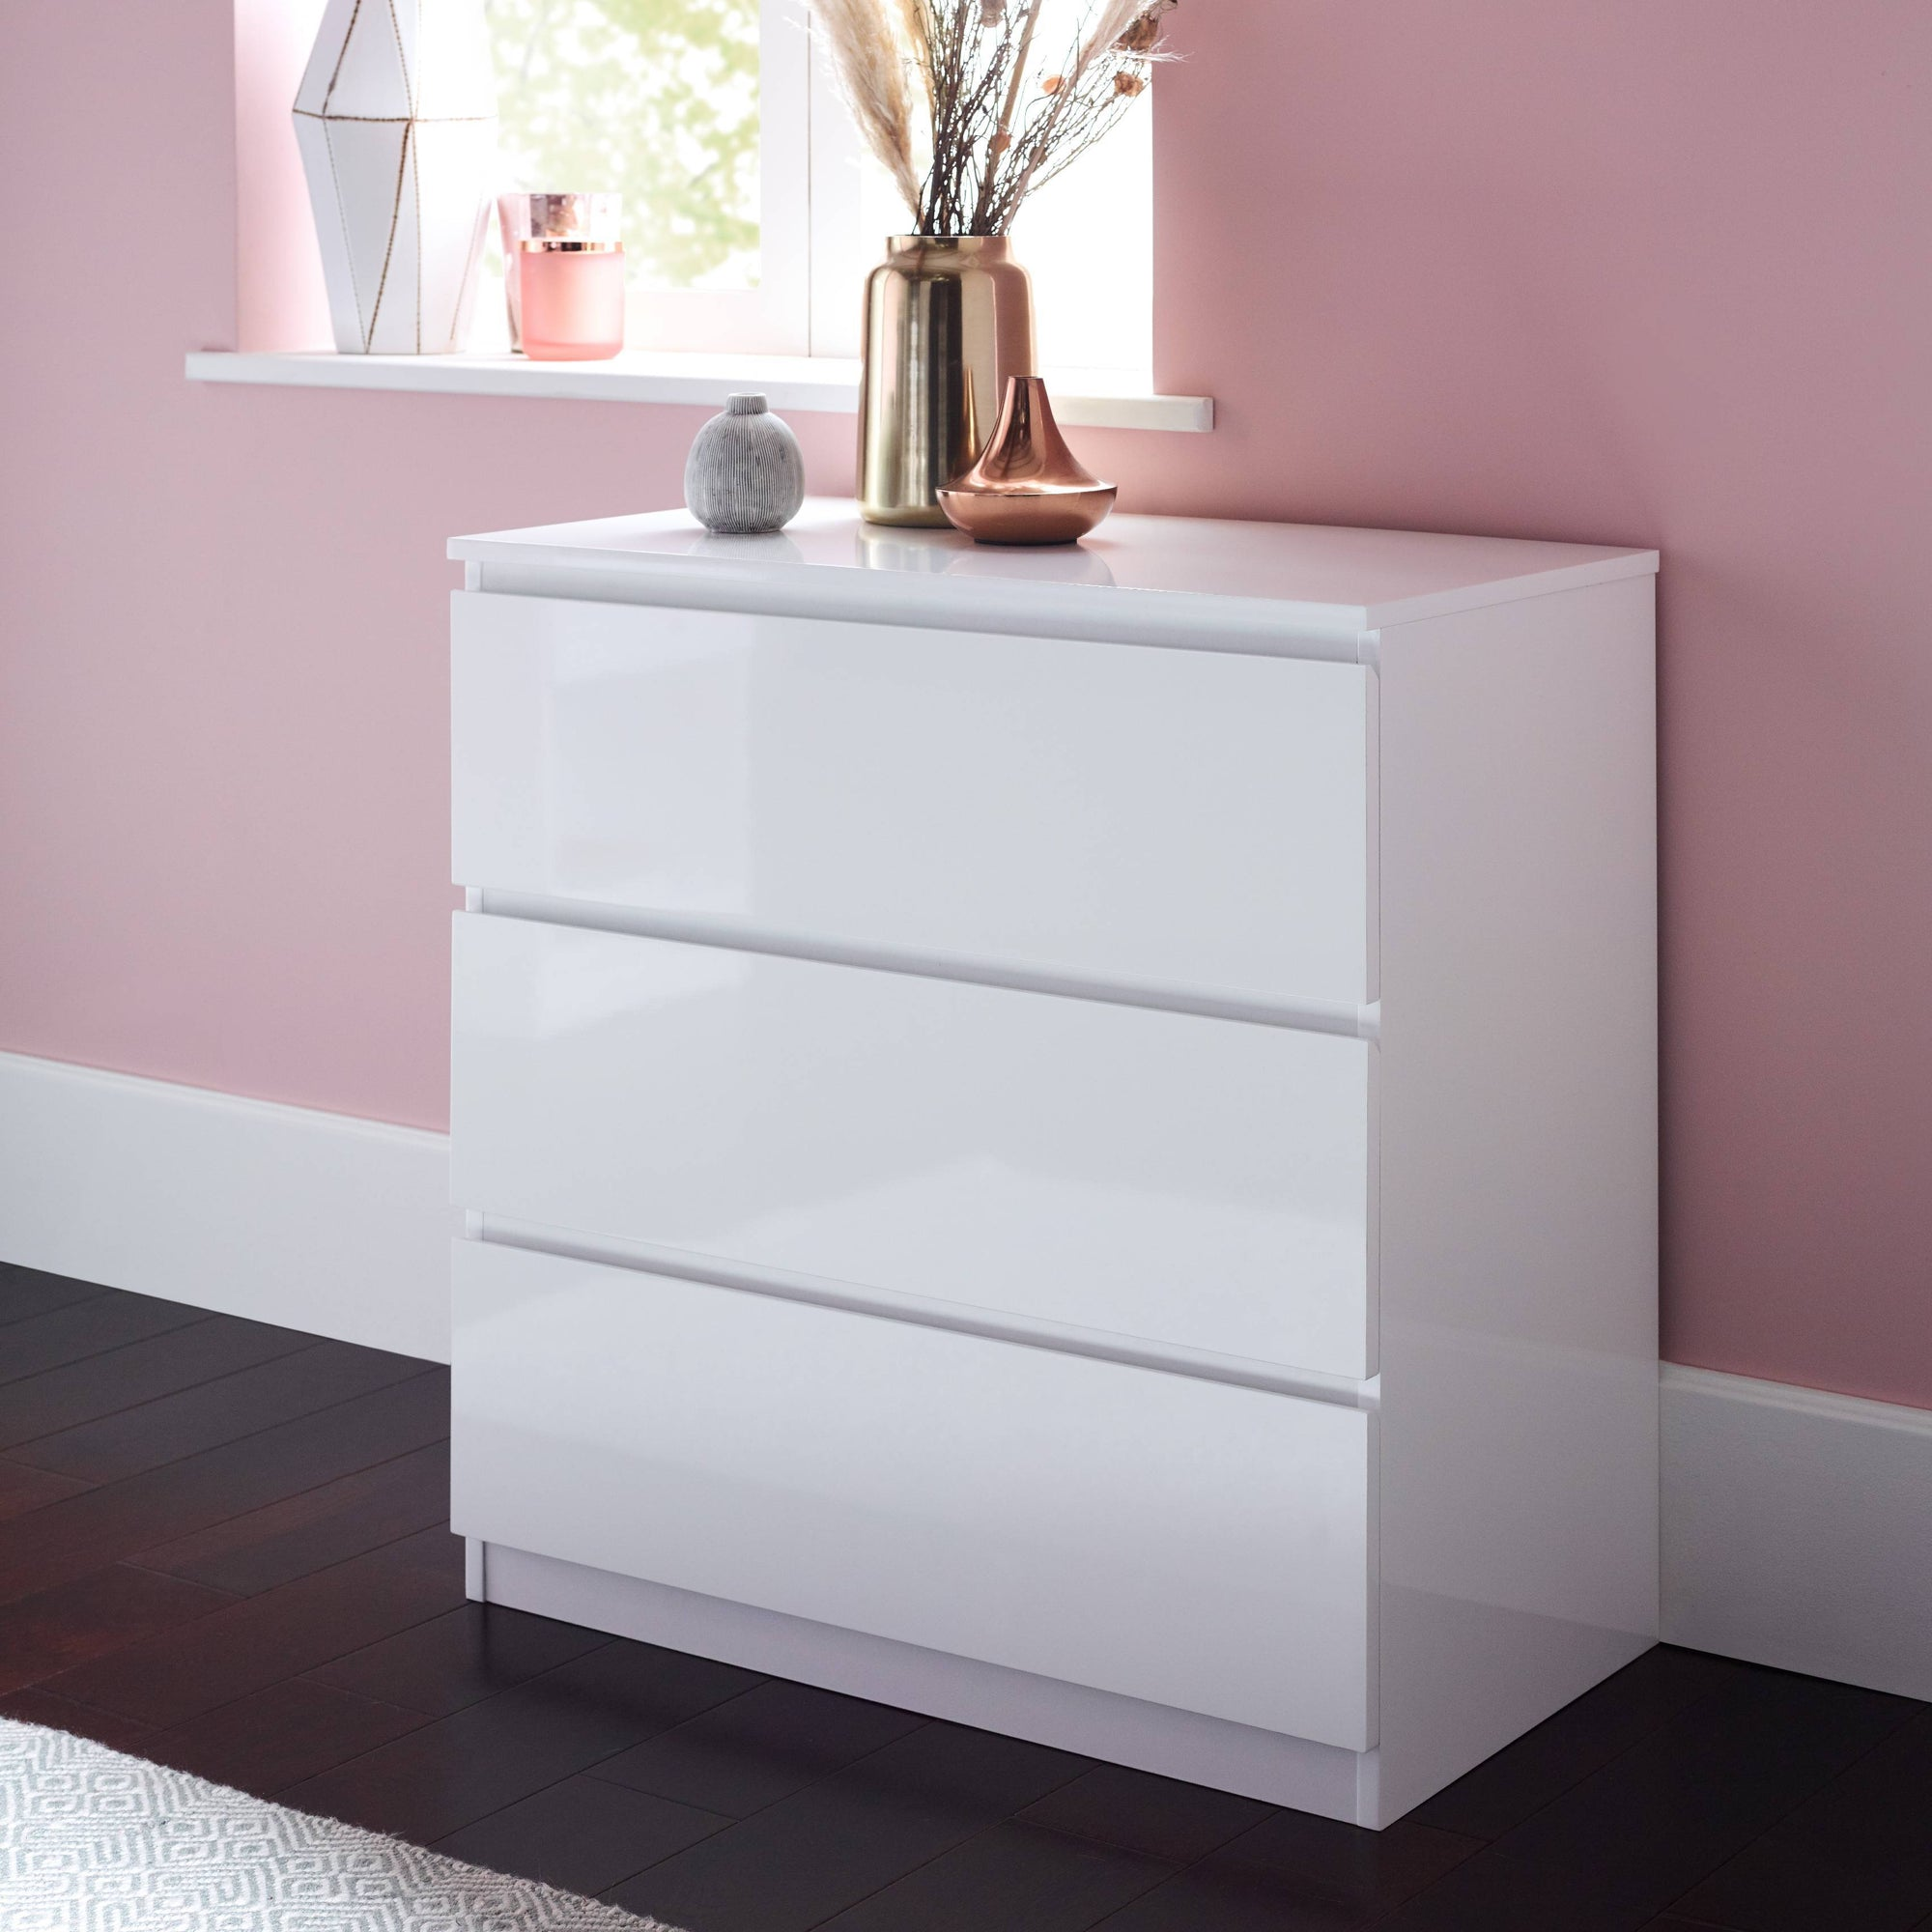 Clemmie high gloss chest of drawers - white - Laura James